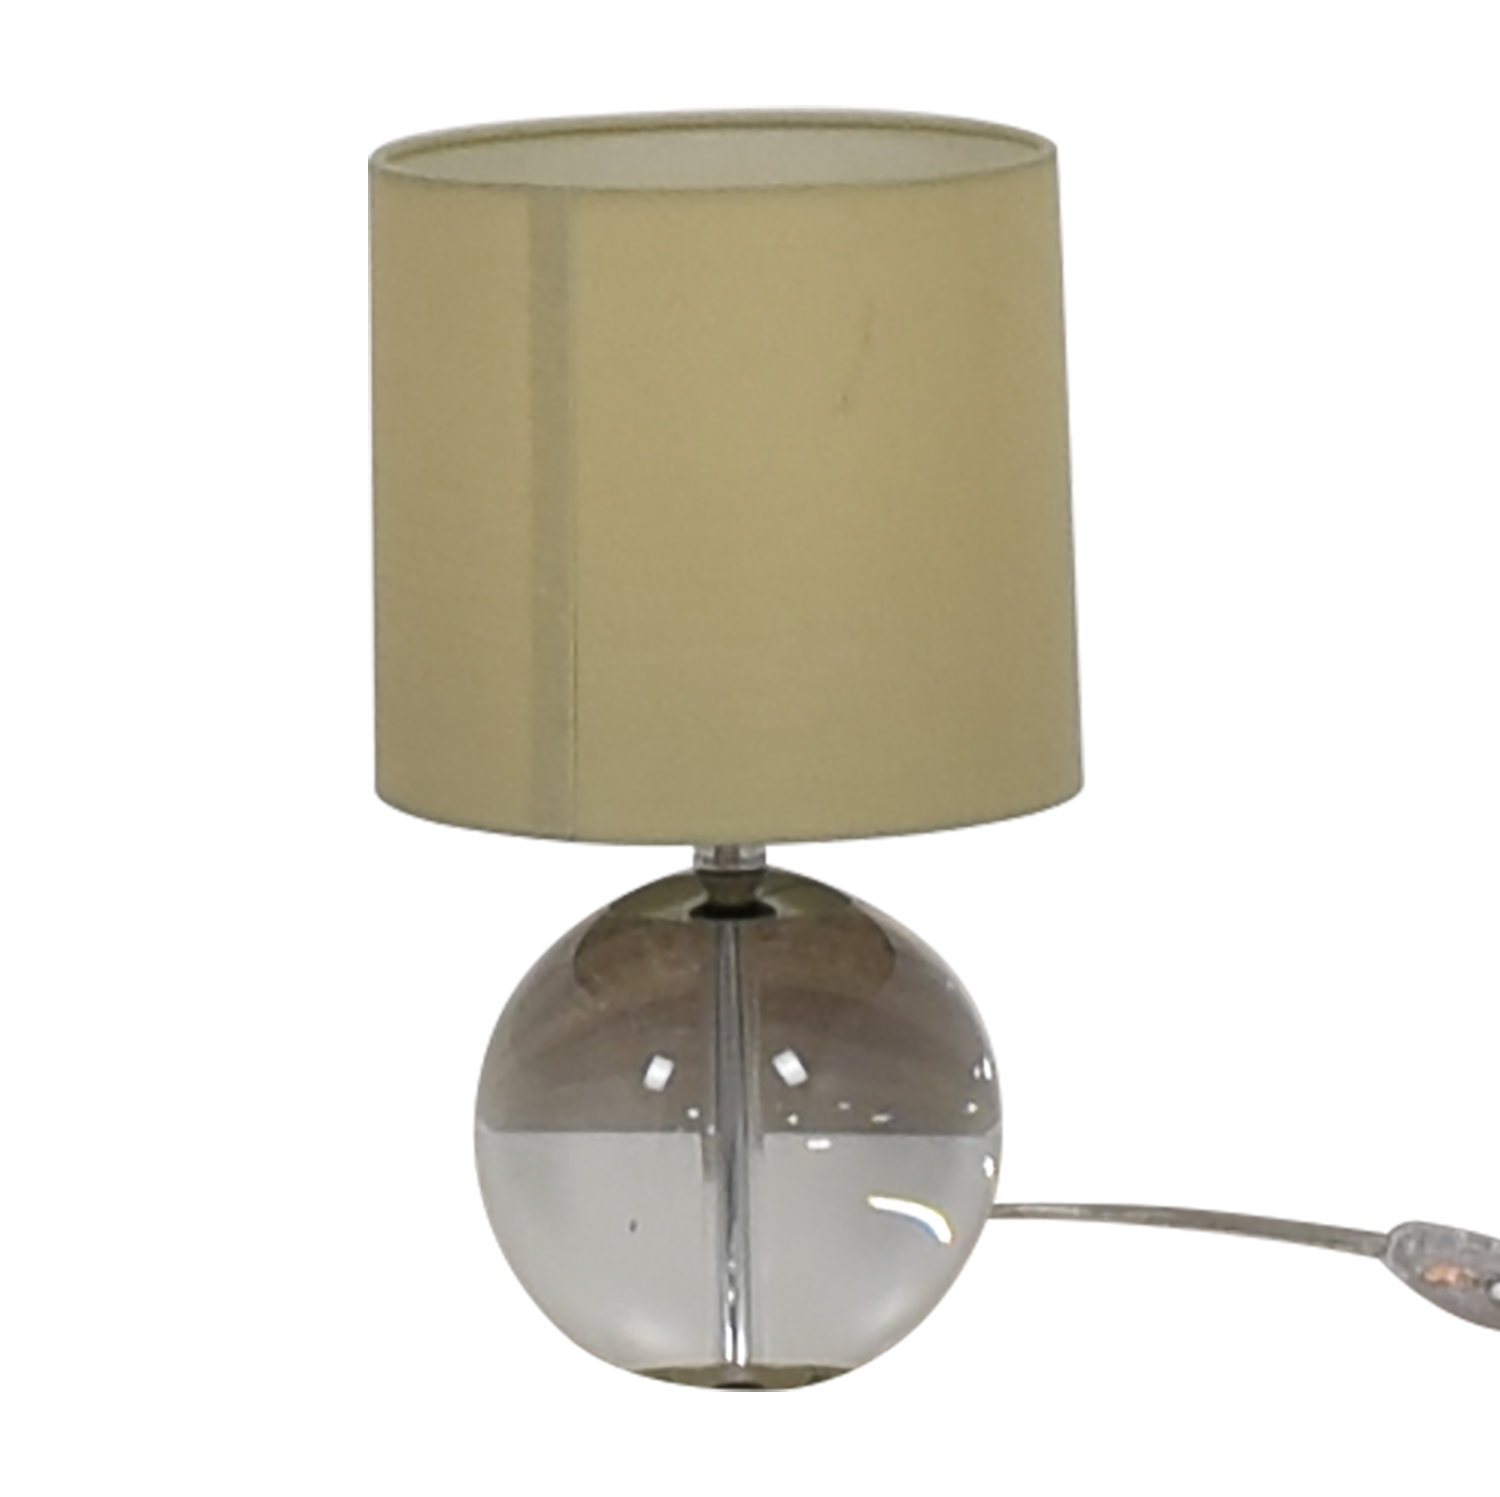 Crate & Barrel Crate & Barrel Round Glass Lamp second hand